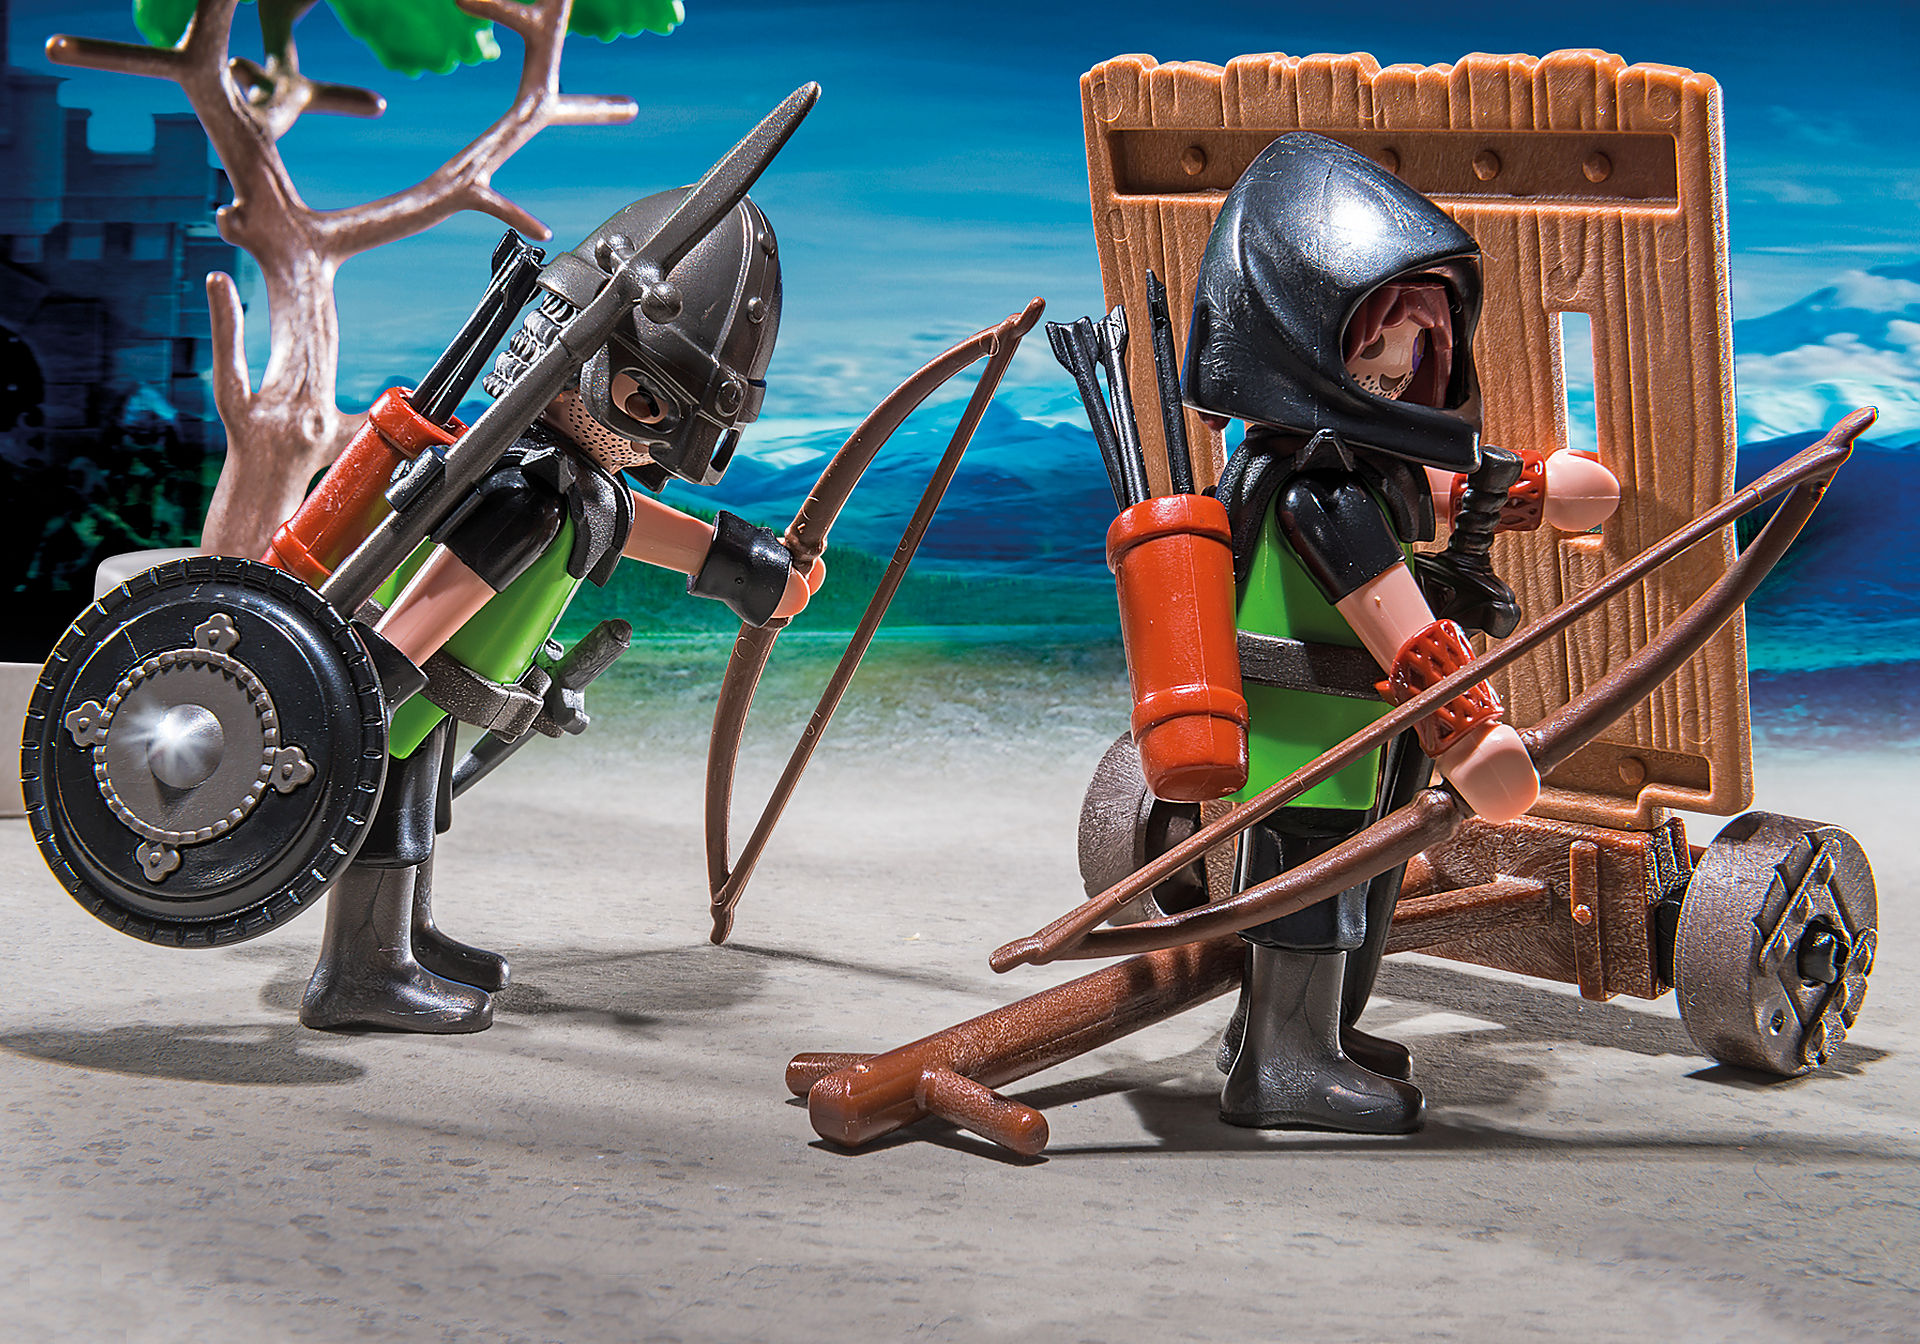 http://media.playmobil.com/i/playmobil/6041_product_extra1/Cavaleiros do Lobo com Catapulta